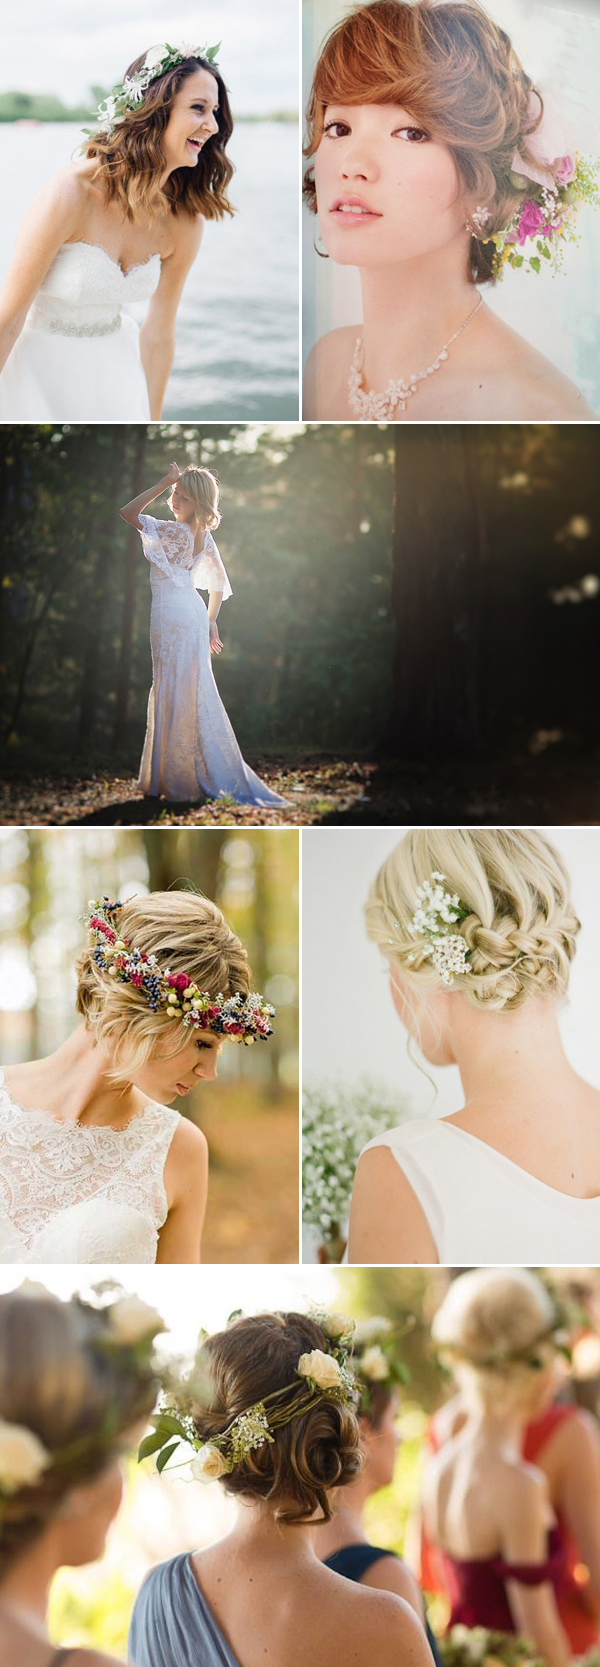 33 Chic Short Bridal Hairstyles Praise Wedding